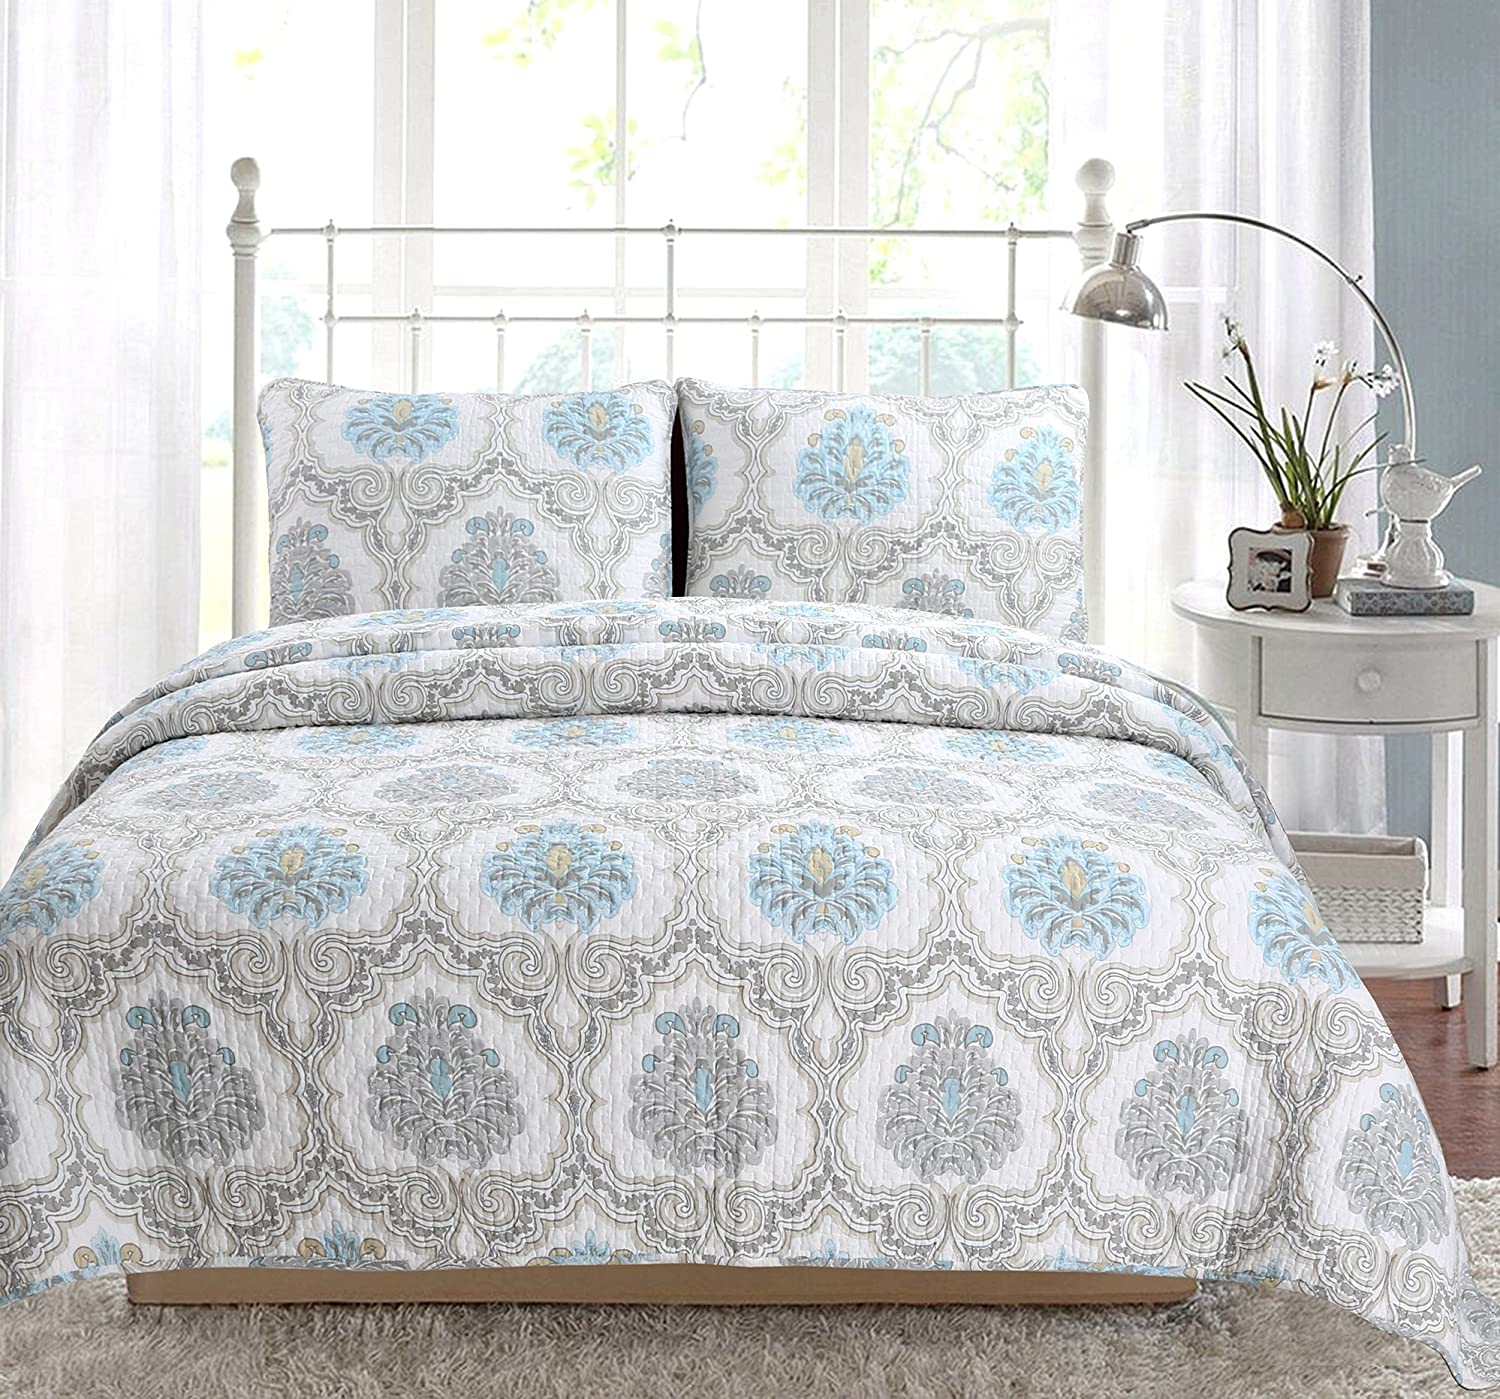 Cozy Line Home Fashions Peace of Mind Bedding Quilt Set, Light Sky Blue Aqua White Grey Printed 100% Cotton Reversible Coverlet Bedspread for Women, (Phacelia, Queen - 3 Piece)